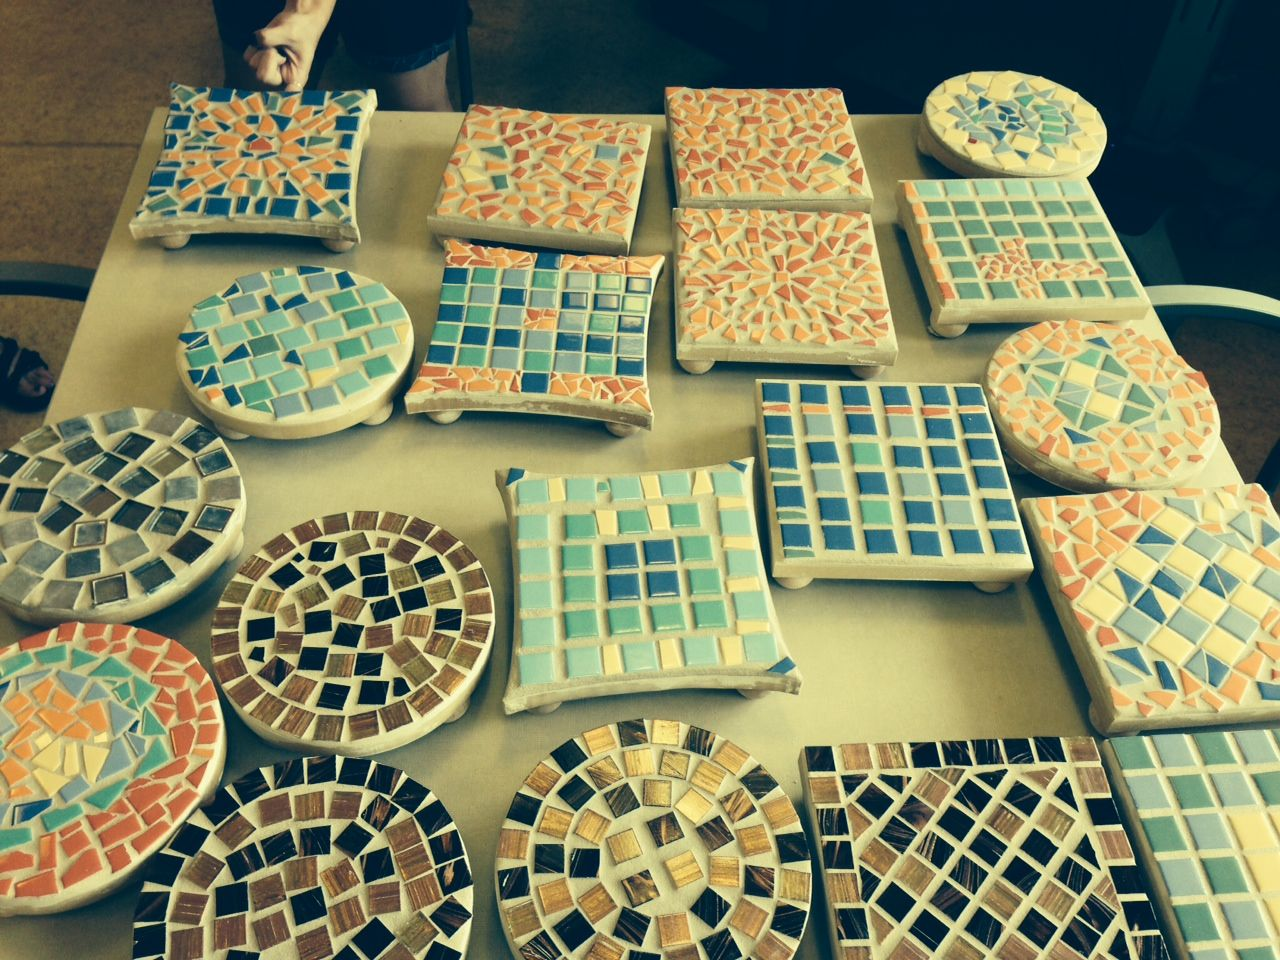 16 best Intergenerational Art Projects images on Pinterest | Art ...